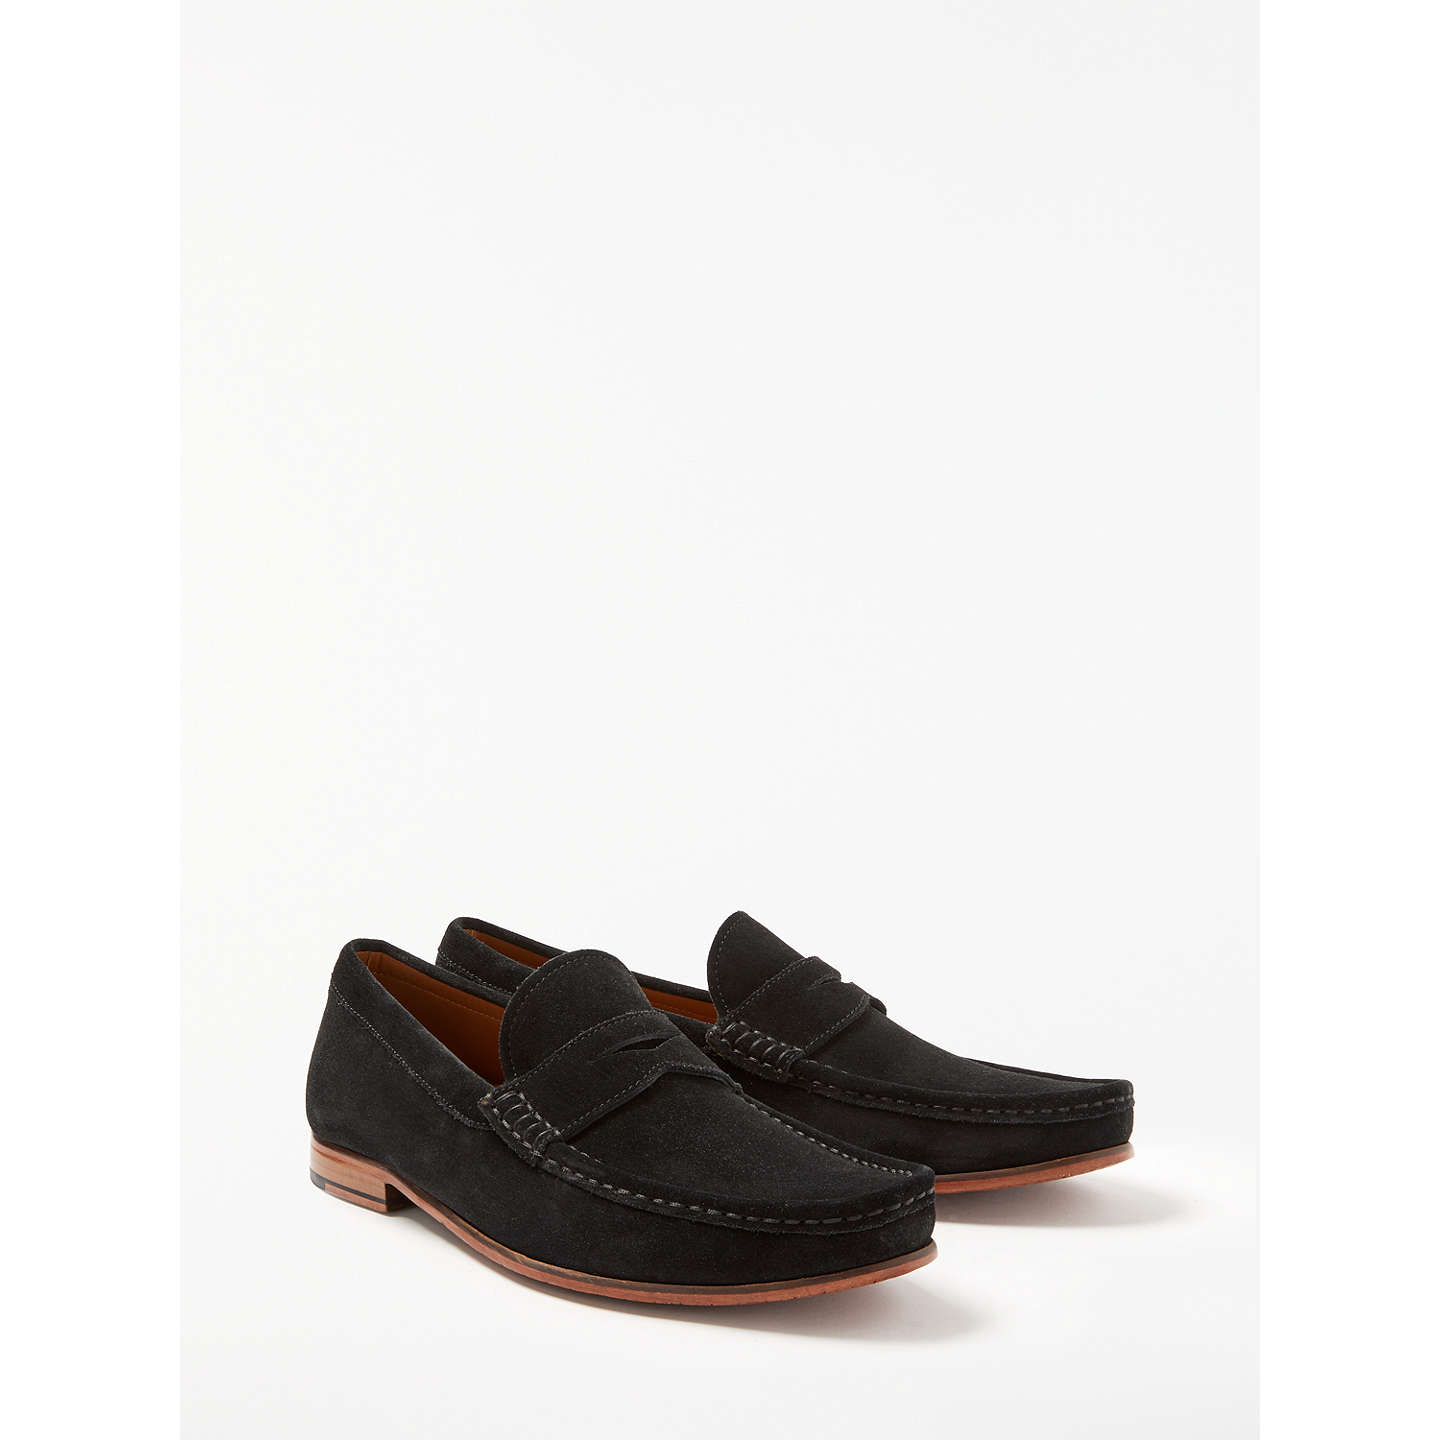 BuyJohn Lewis Louis Suede Penny Loafers, Black, 6 Online at johnlewis.com